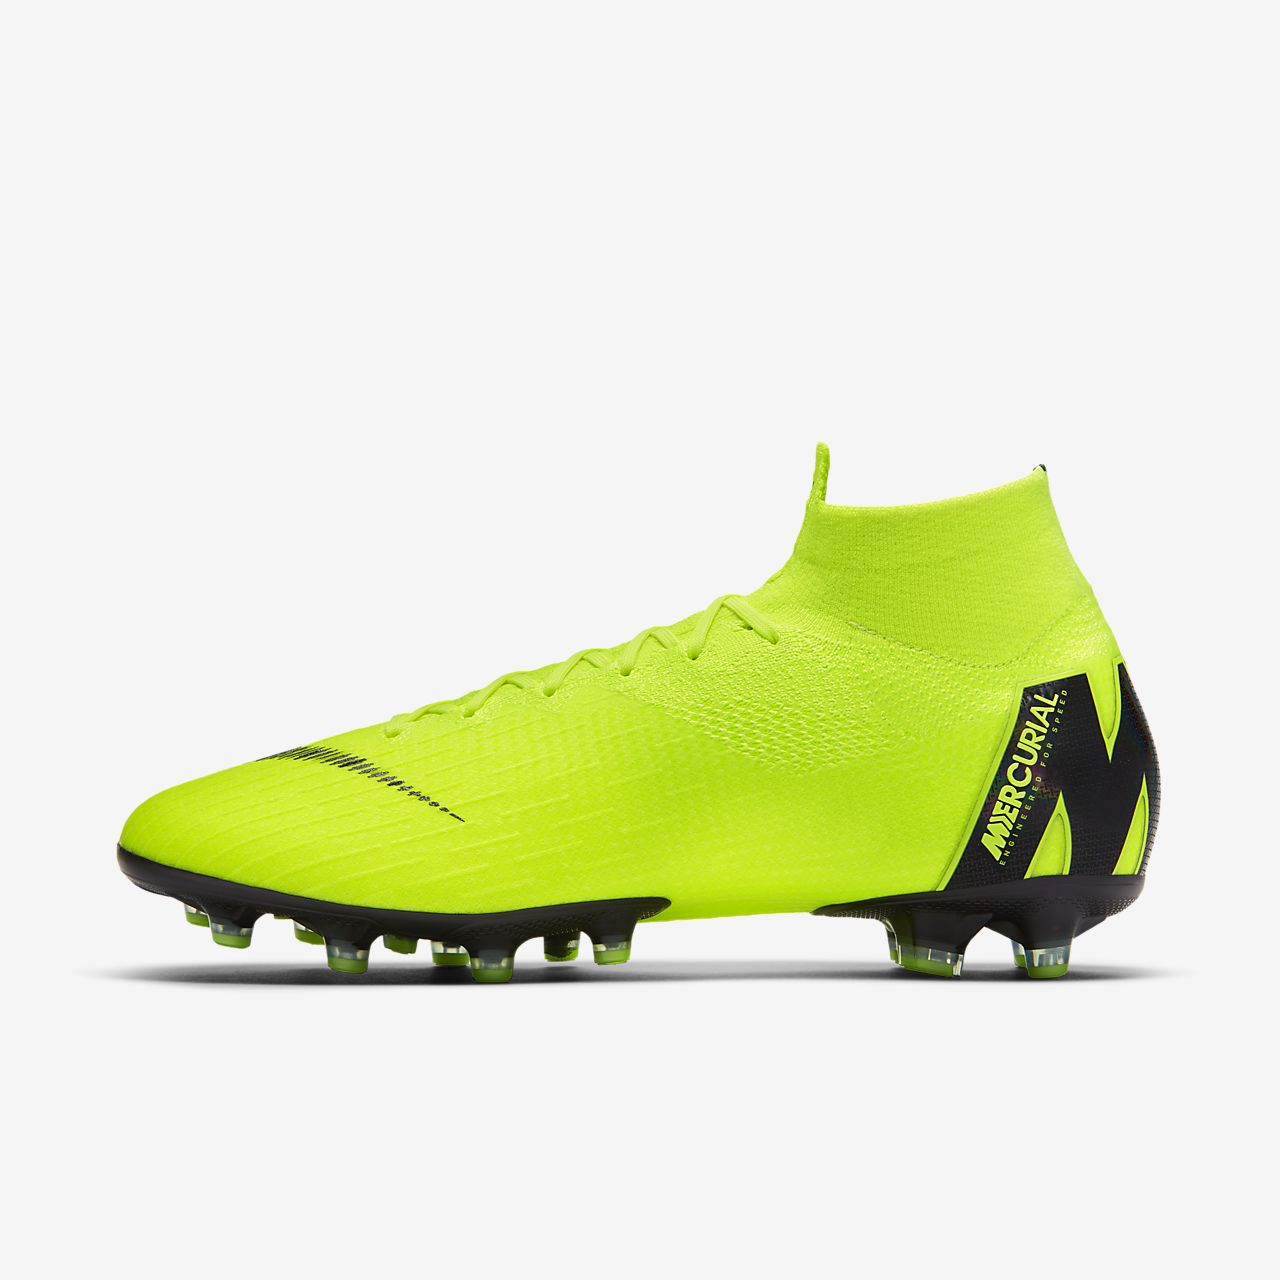 pre order cozy fresh hot products Nike Mercurial Superfly 360 Elite AG-PRO Artificial-Grass Football Boot